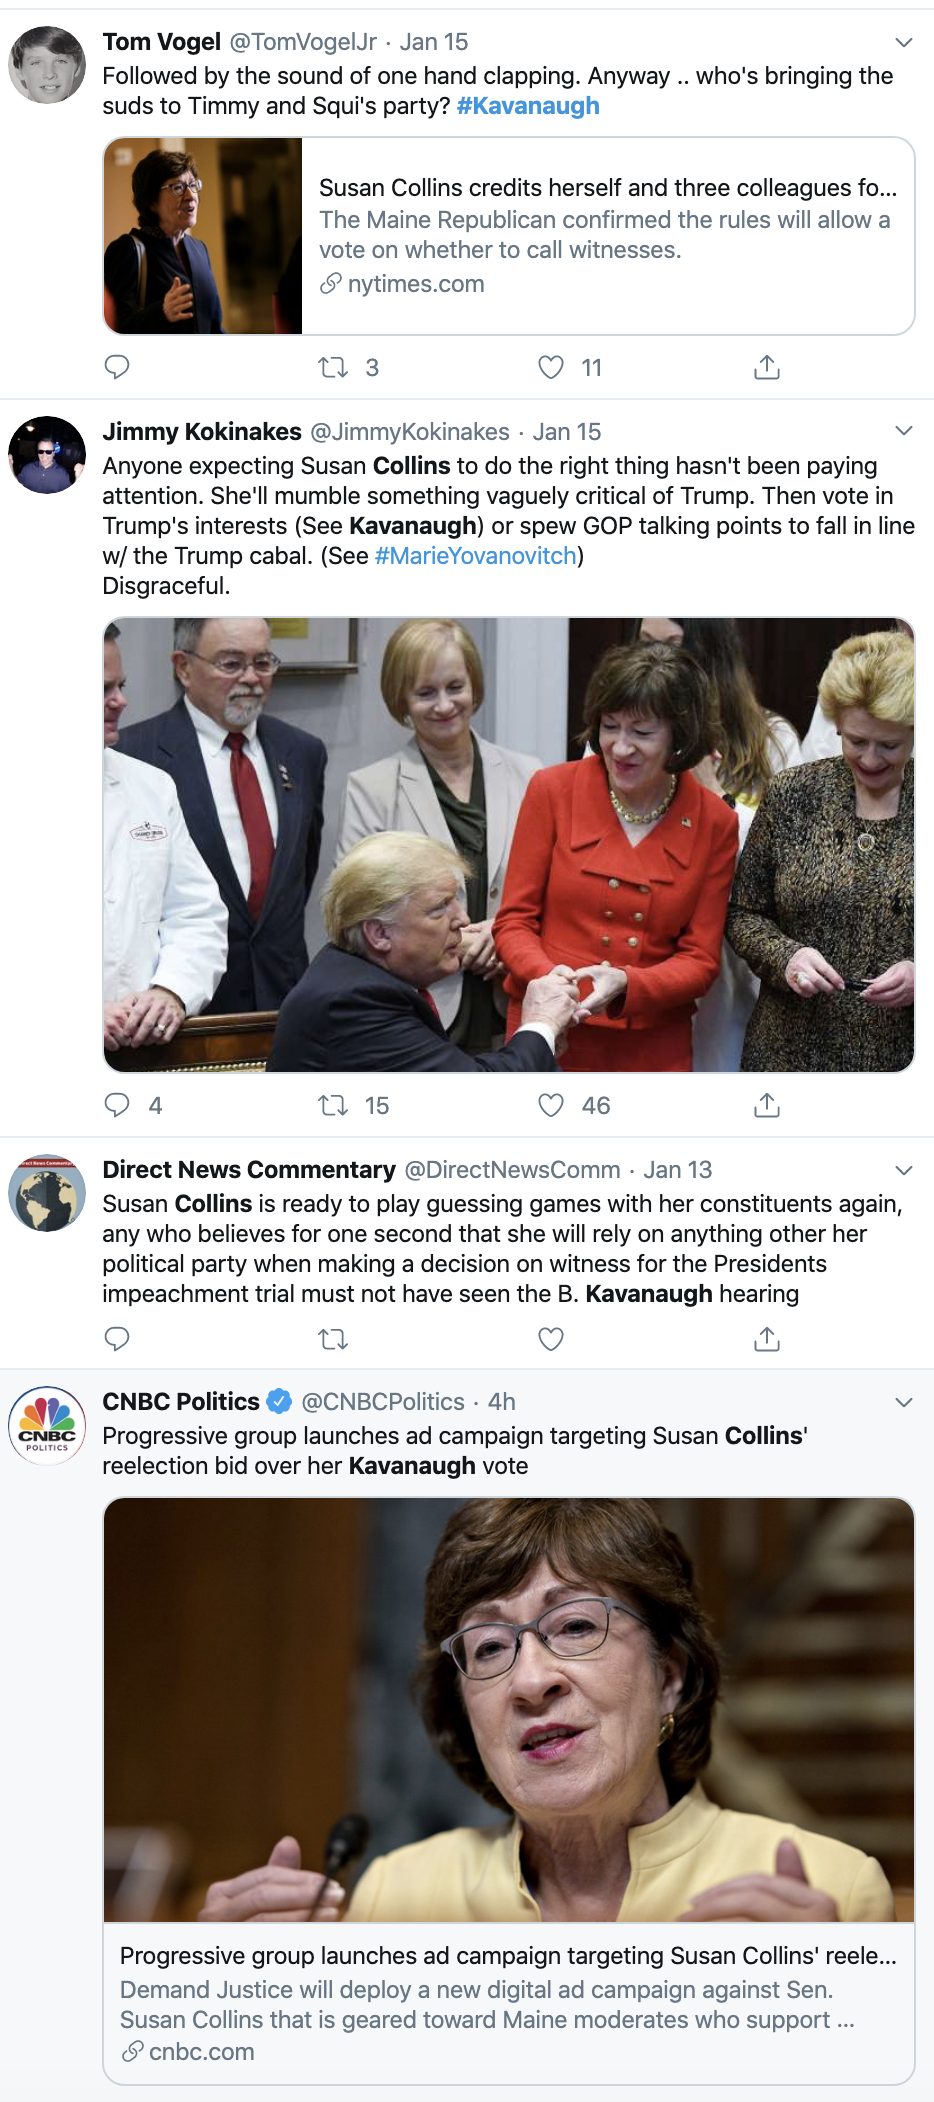 Screen-Shot-2020-01-21-at-11.13.36-AM Susan Collins' Opponent Gets Ringing Endorsement Abortion Featured Feminism Top Stories Women's Rights